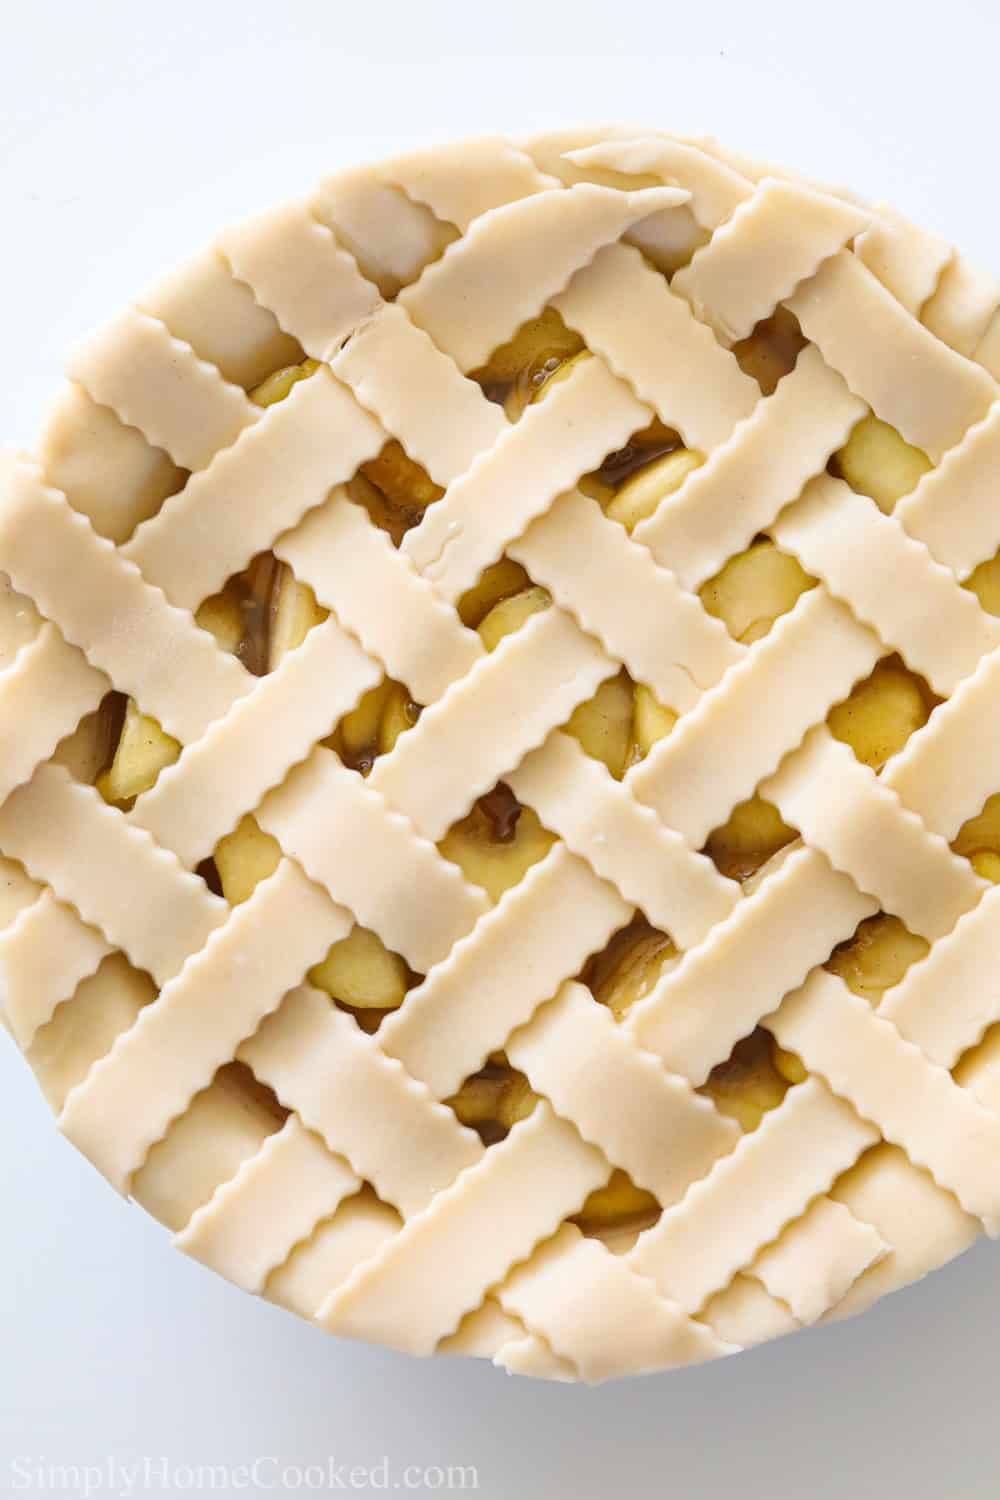 Latticed Homemade Apple Pie with a white background.